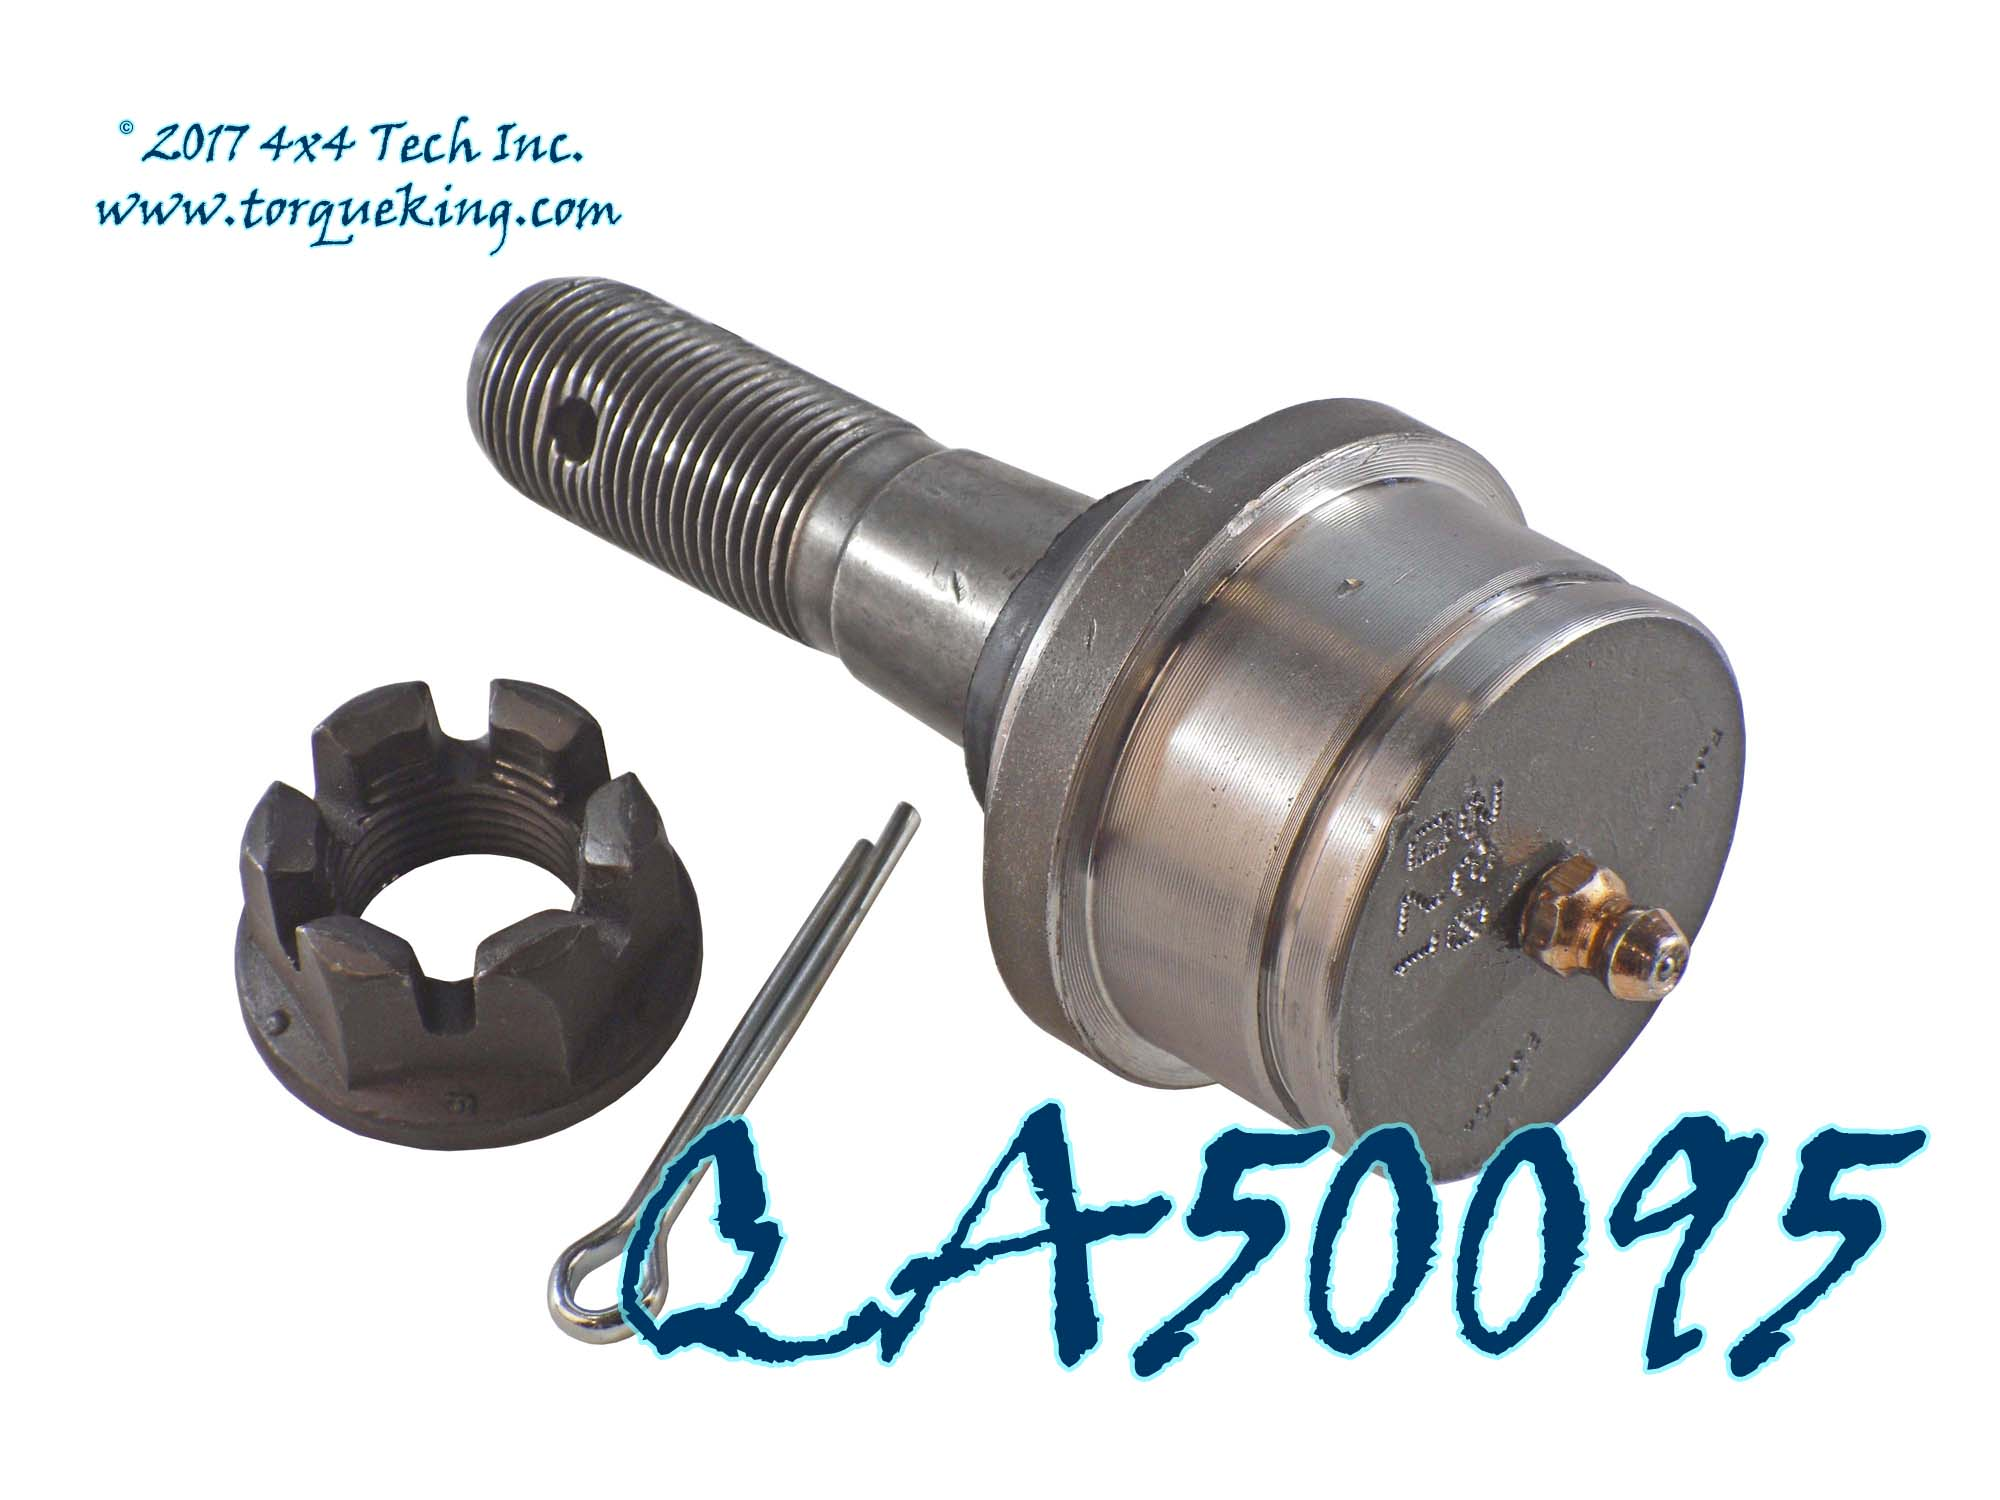 Qa50095 premium greaseable upper ball joint for all ford dana 44 ifs front axles